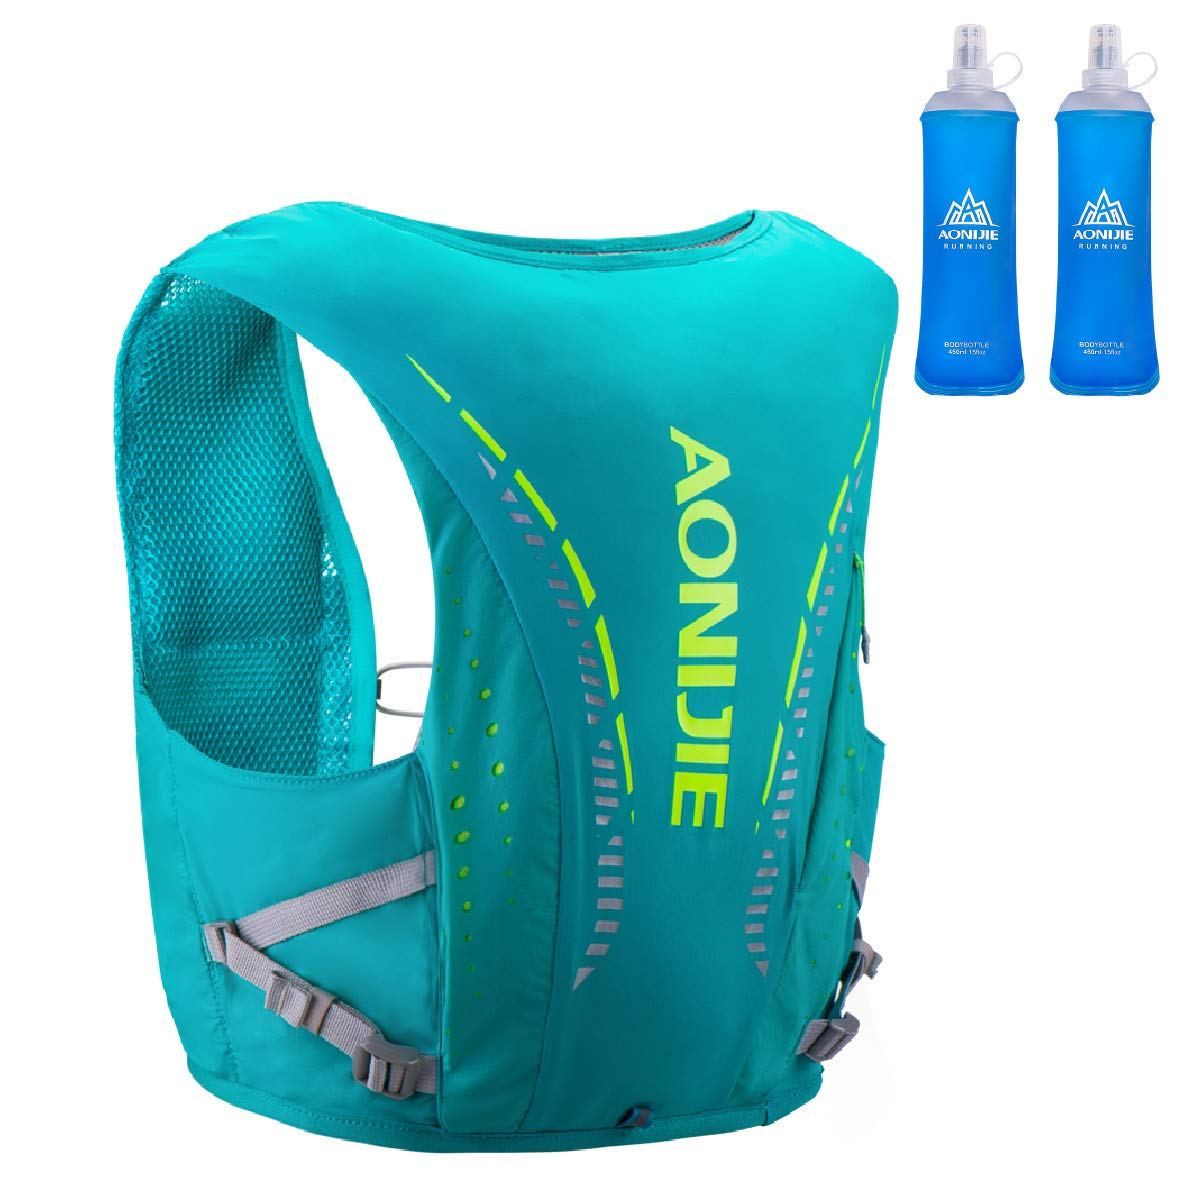 TRIWONDER Hydration Pack Backpack 10L Hydration Vest Ultra Marathon Running Vest Lightweight Pack for Outdoor Running Cycling Hiking (Light Green - with 2 Water Bottles, S/M - 27.6-31.5in)